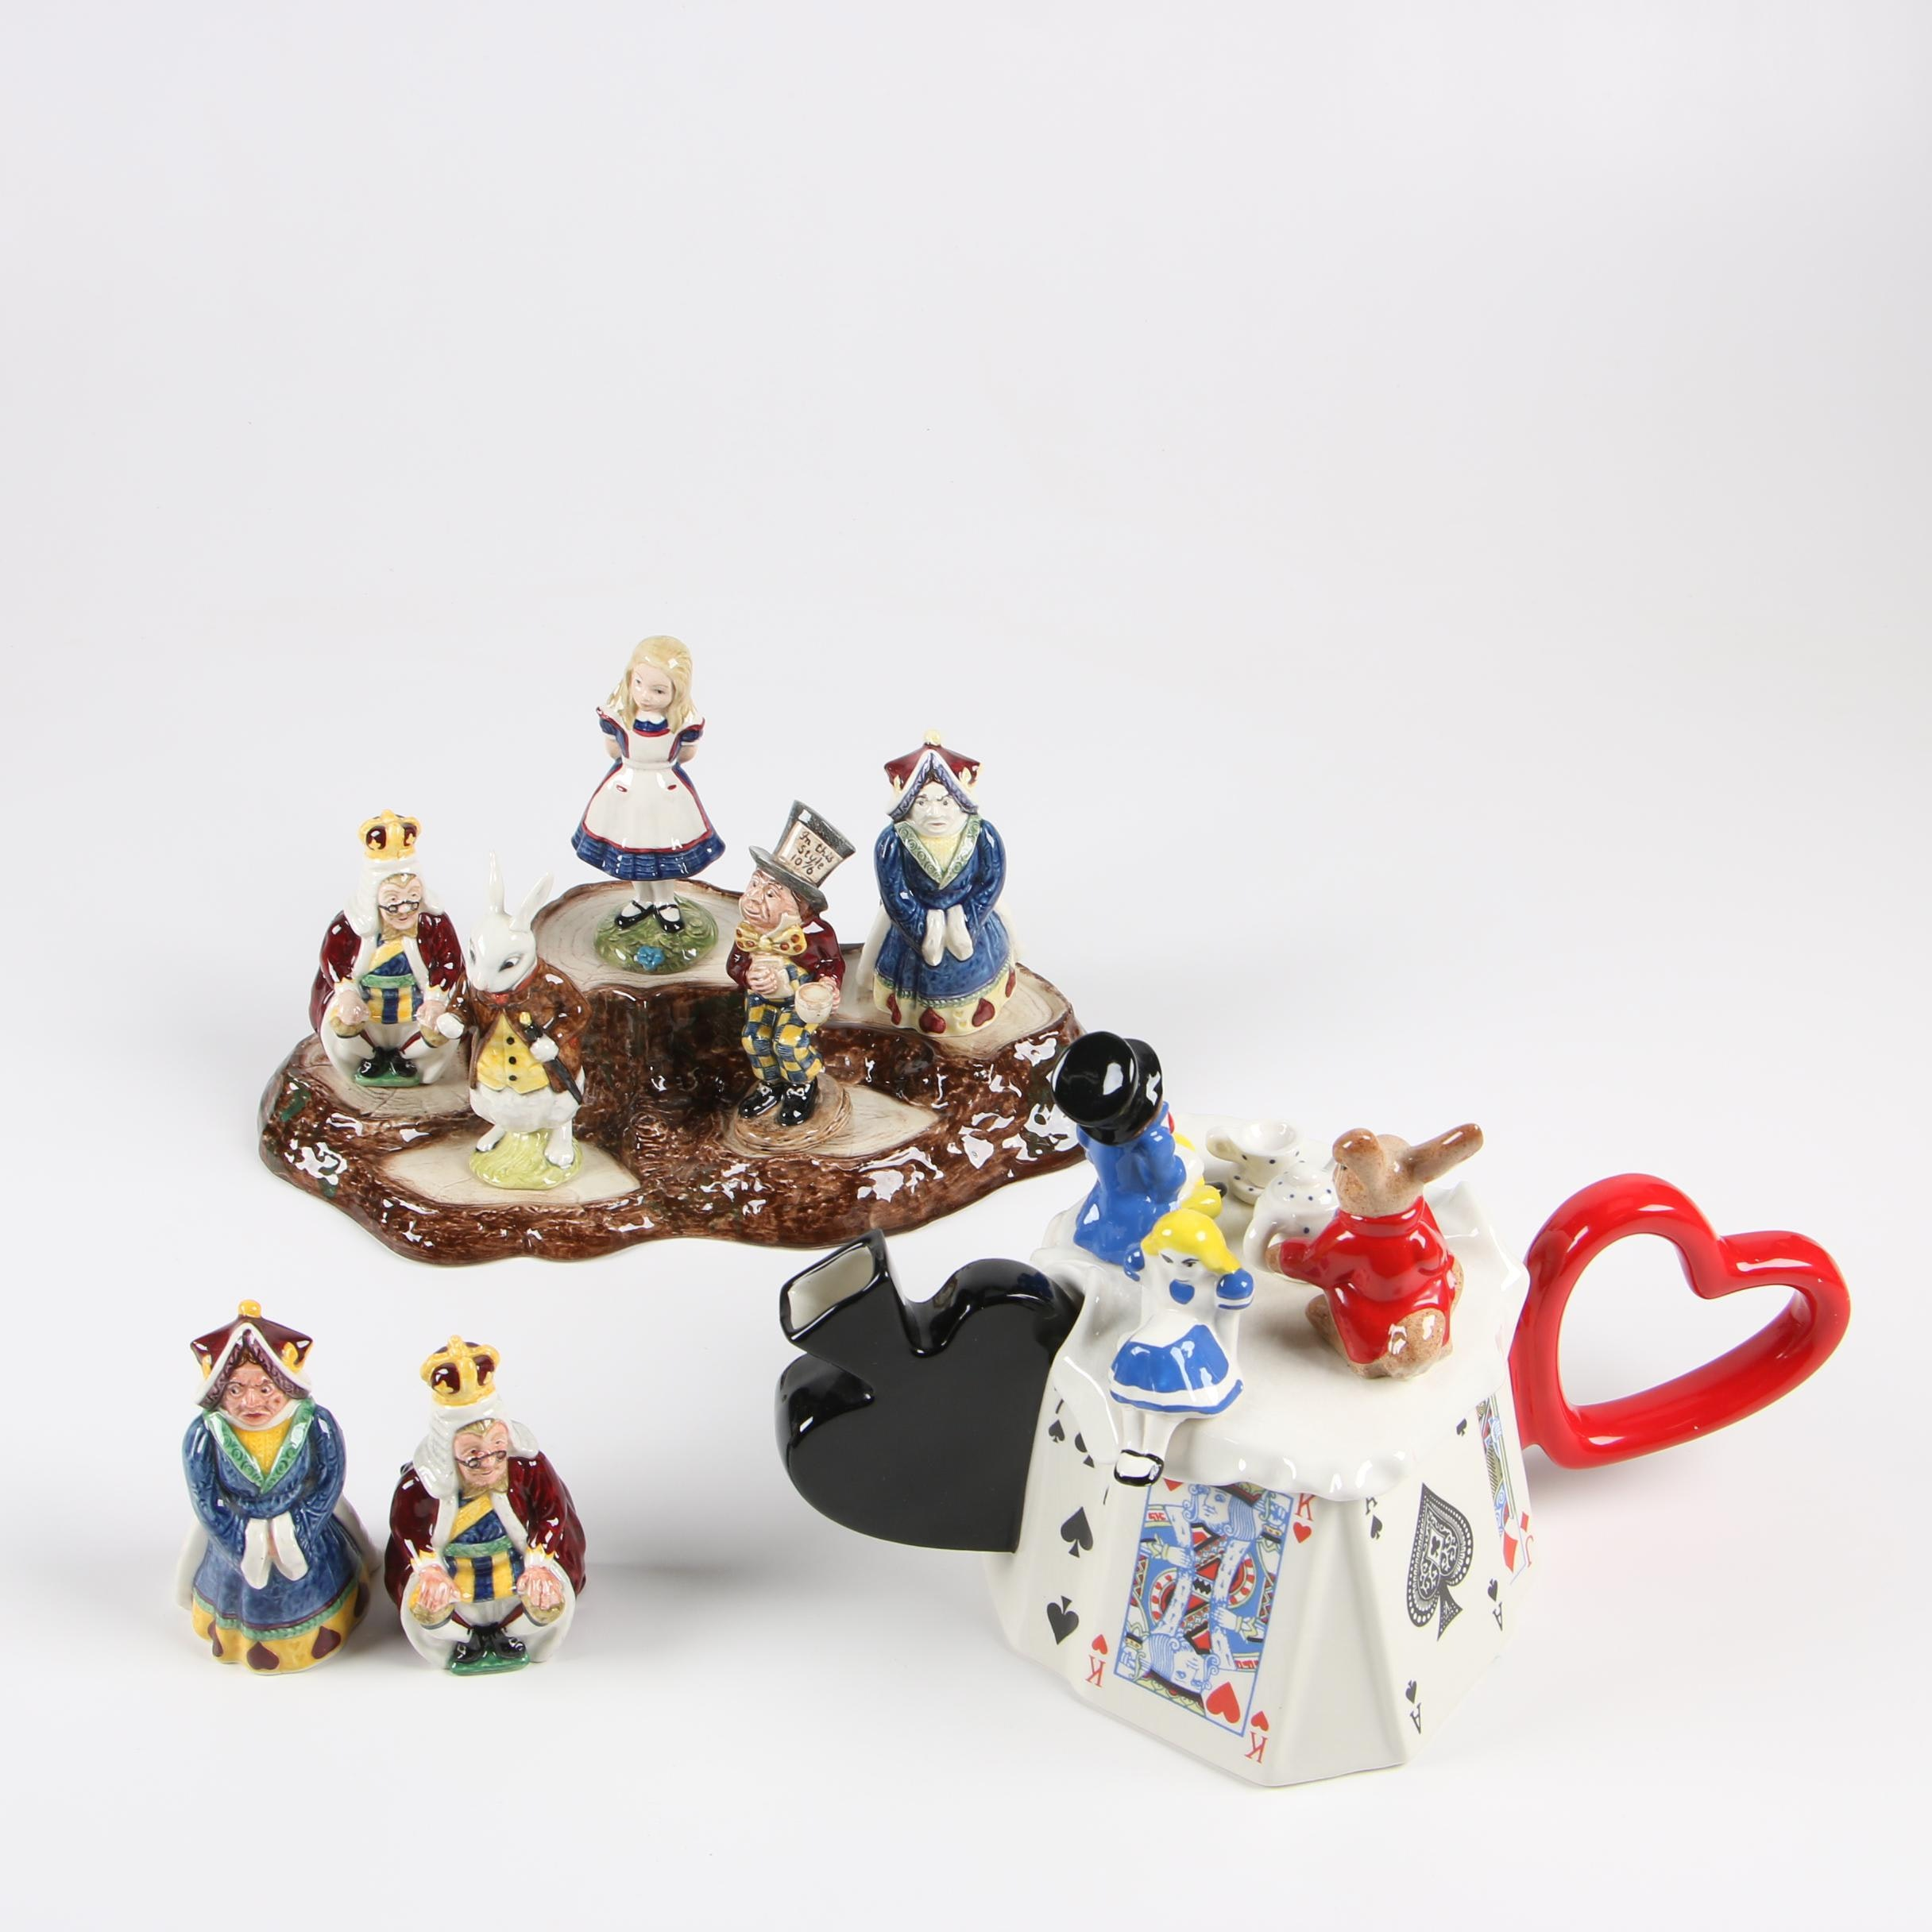 Alice in Wonderland Teapot and Décor by Beswick and South-West Ceramics